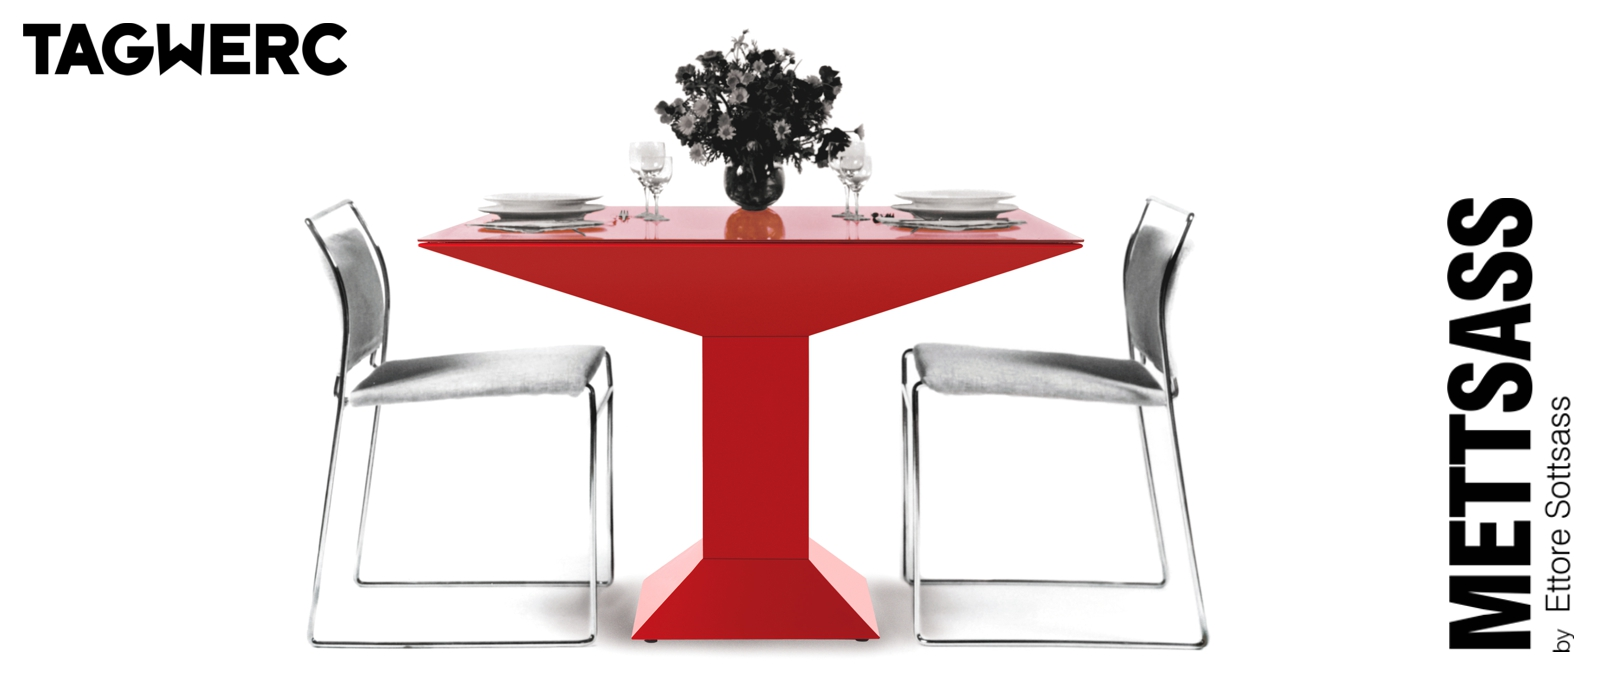 mettsass-table_red__bd-barcelona_ettore-sottsass-1972___tagwerc_